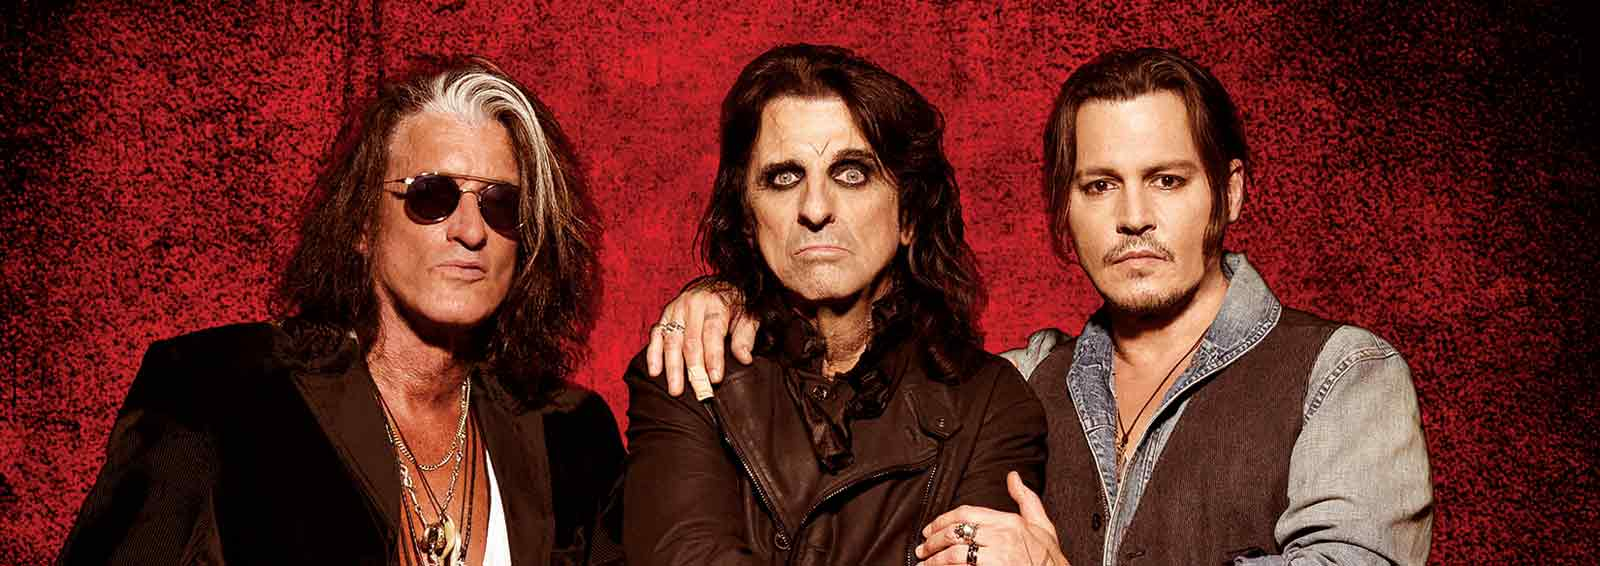 HollywoodVampires1600x567.jpg